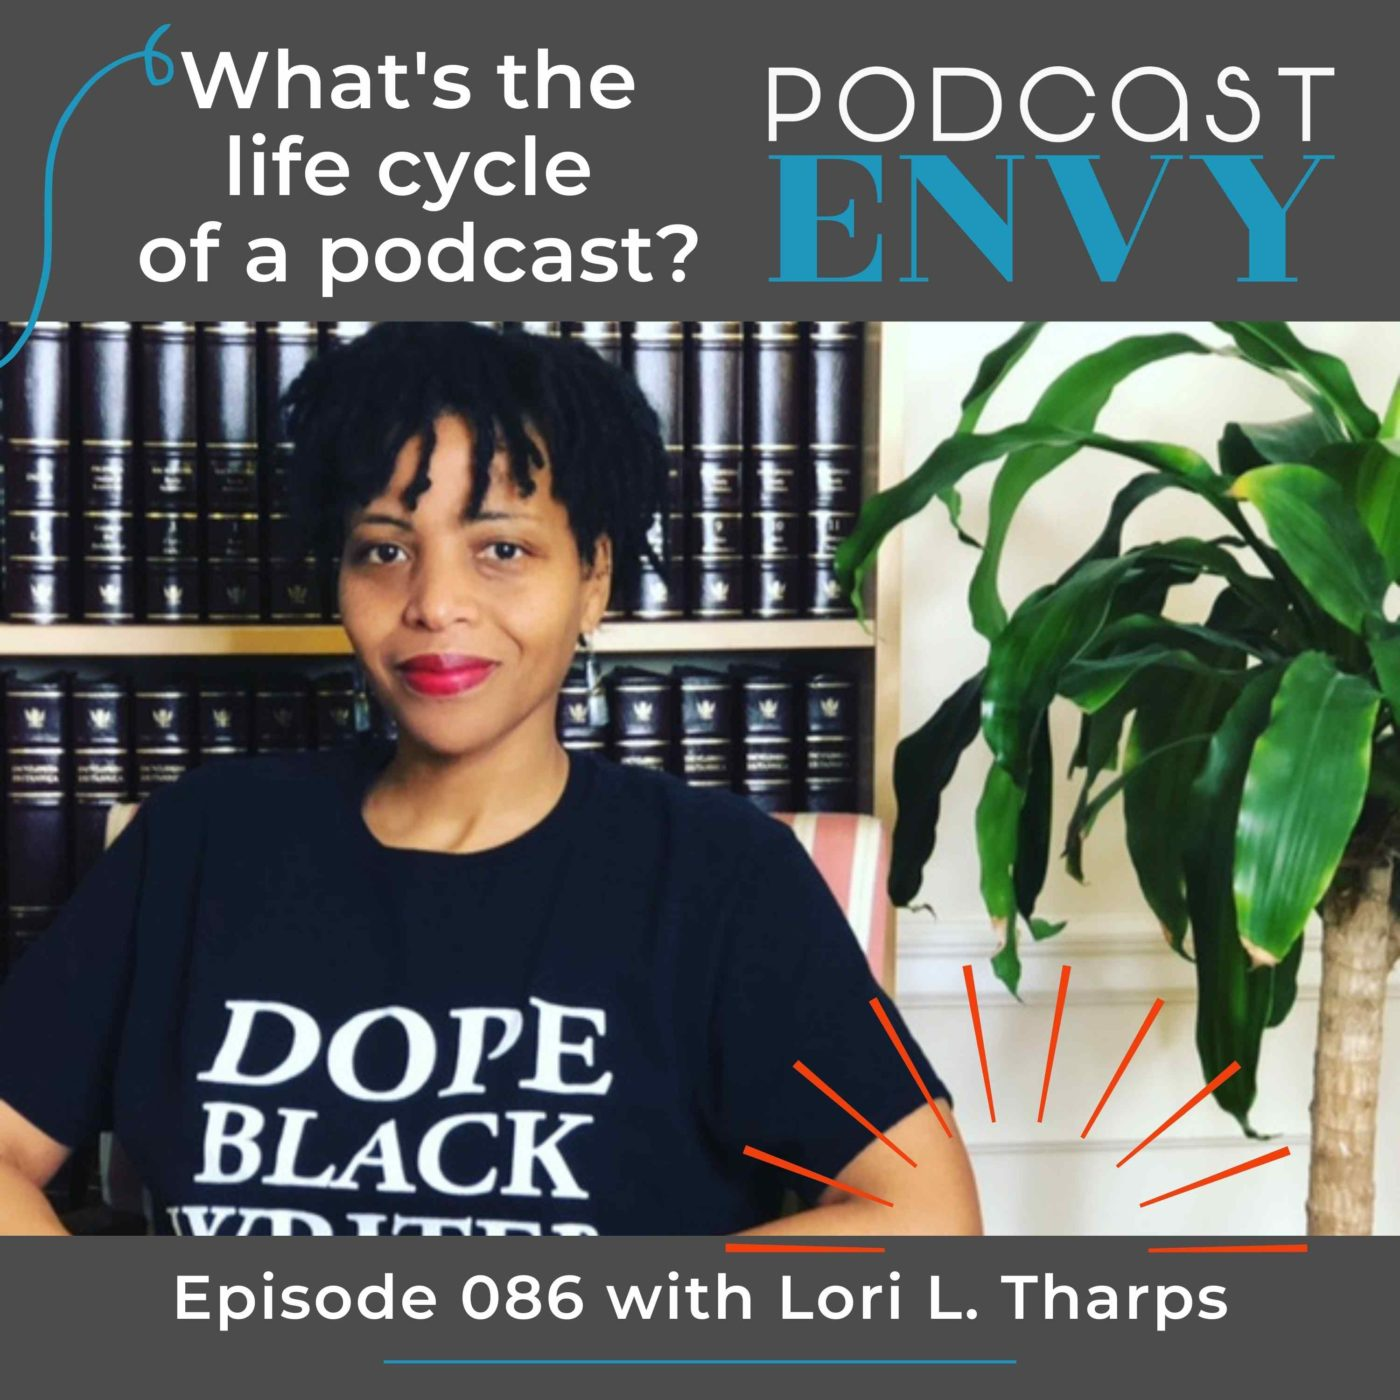 086: What's the life cycle of a podcast? with Lori L. Tharps